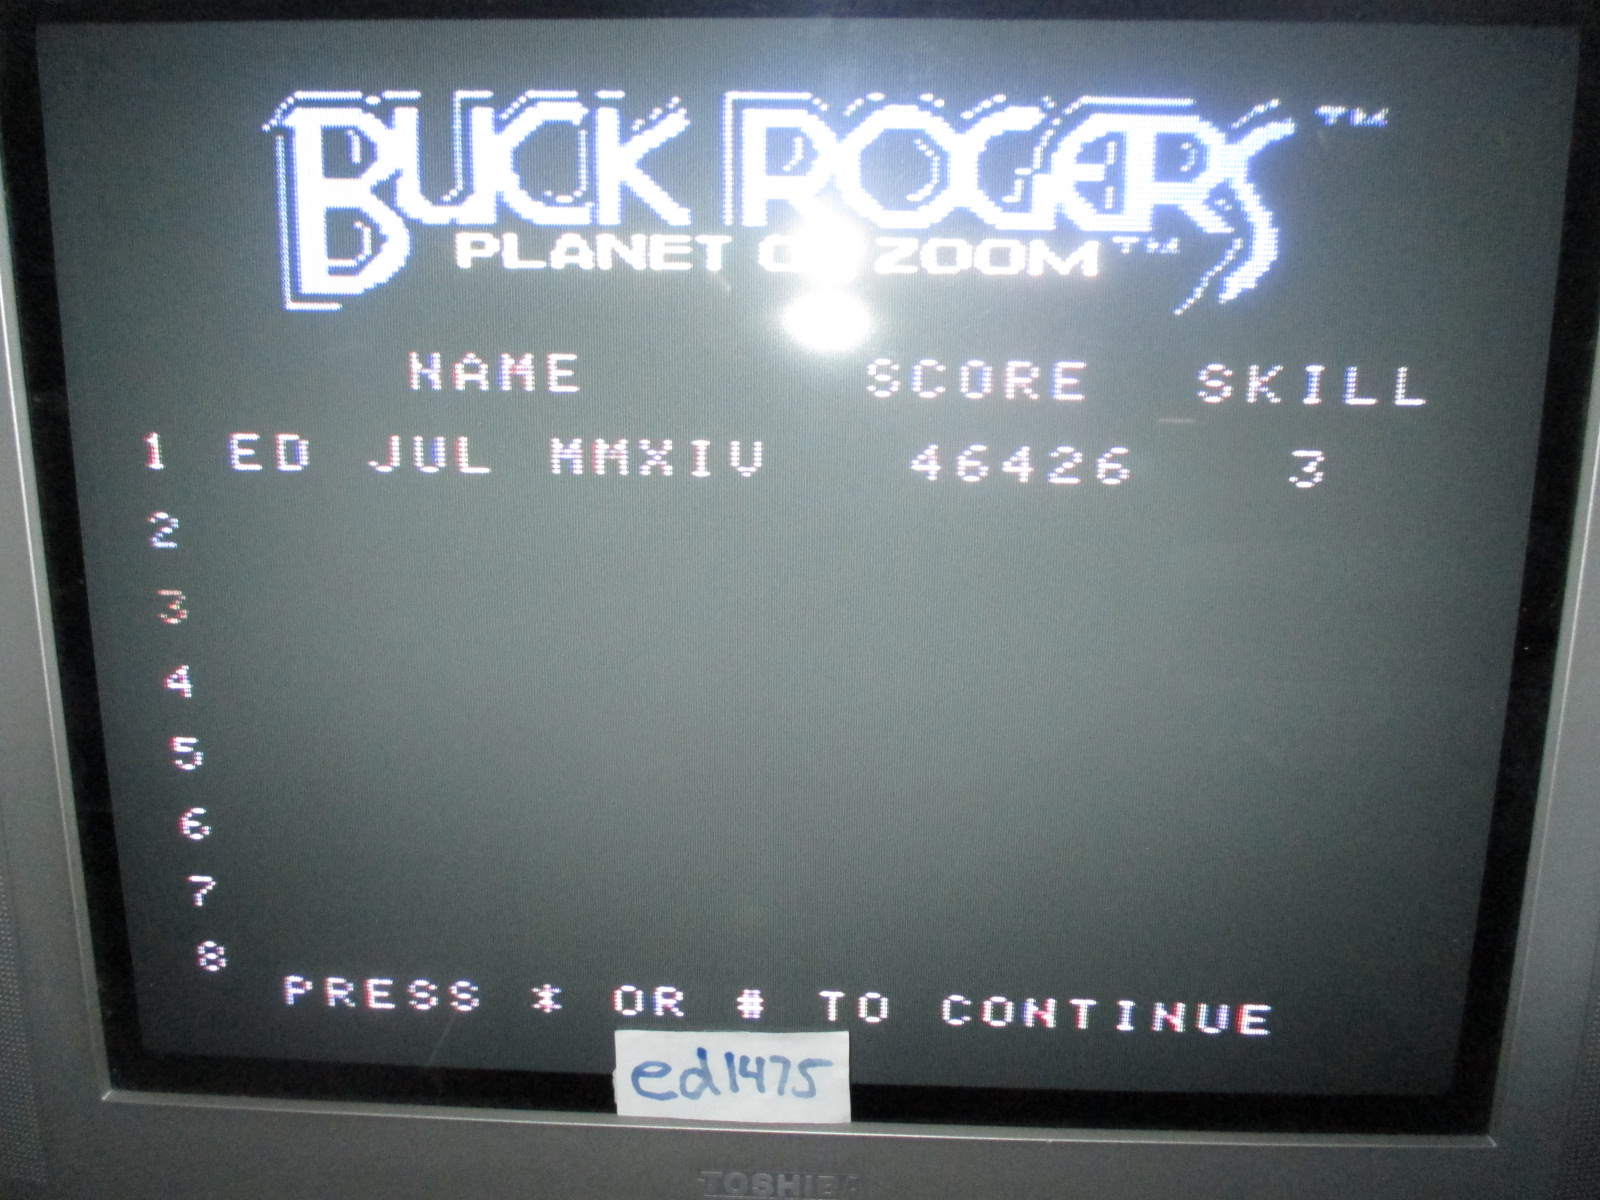 ed1475: Buck Rogers Super Game: Skill 3 (Colecovision) 46,426 points on 2014-07-01 19:47:36